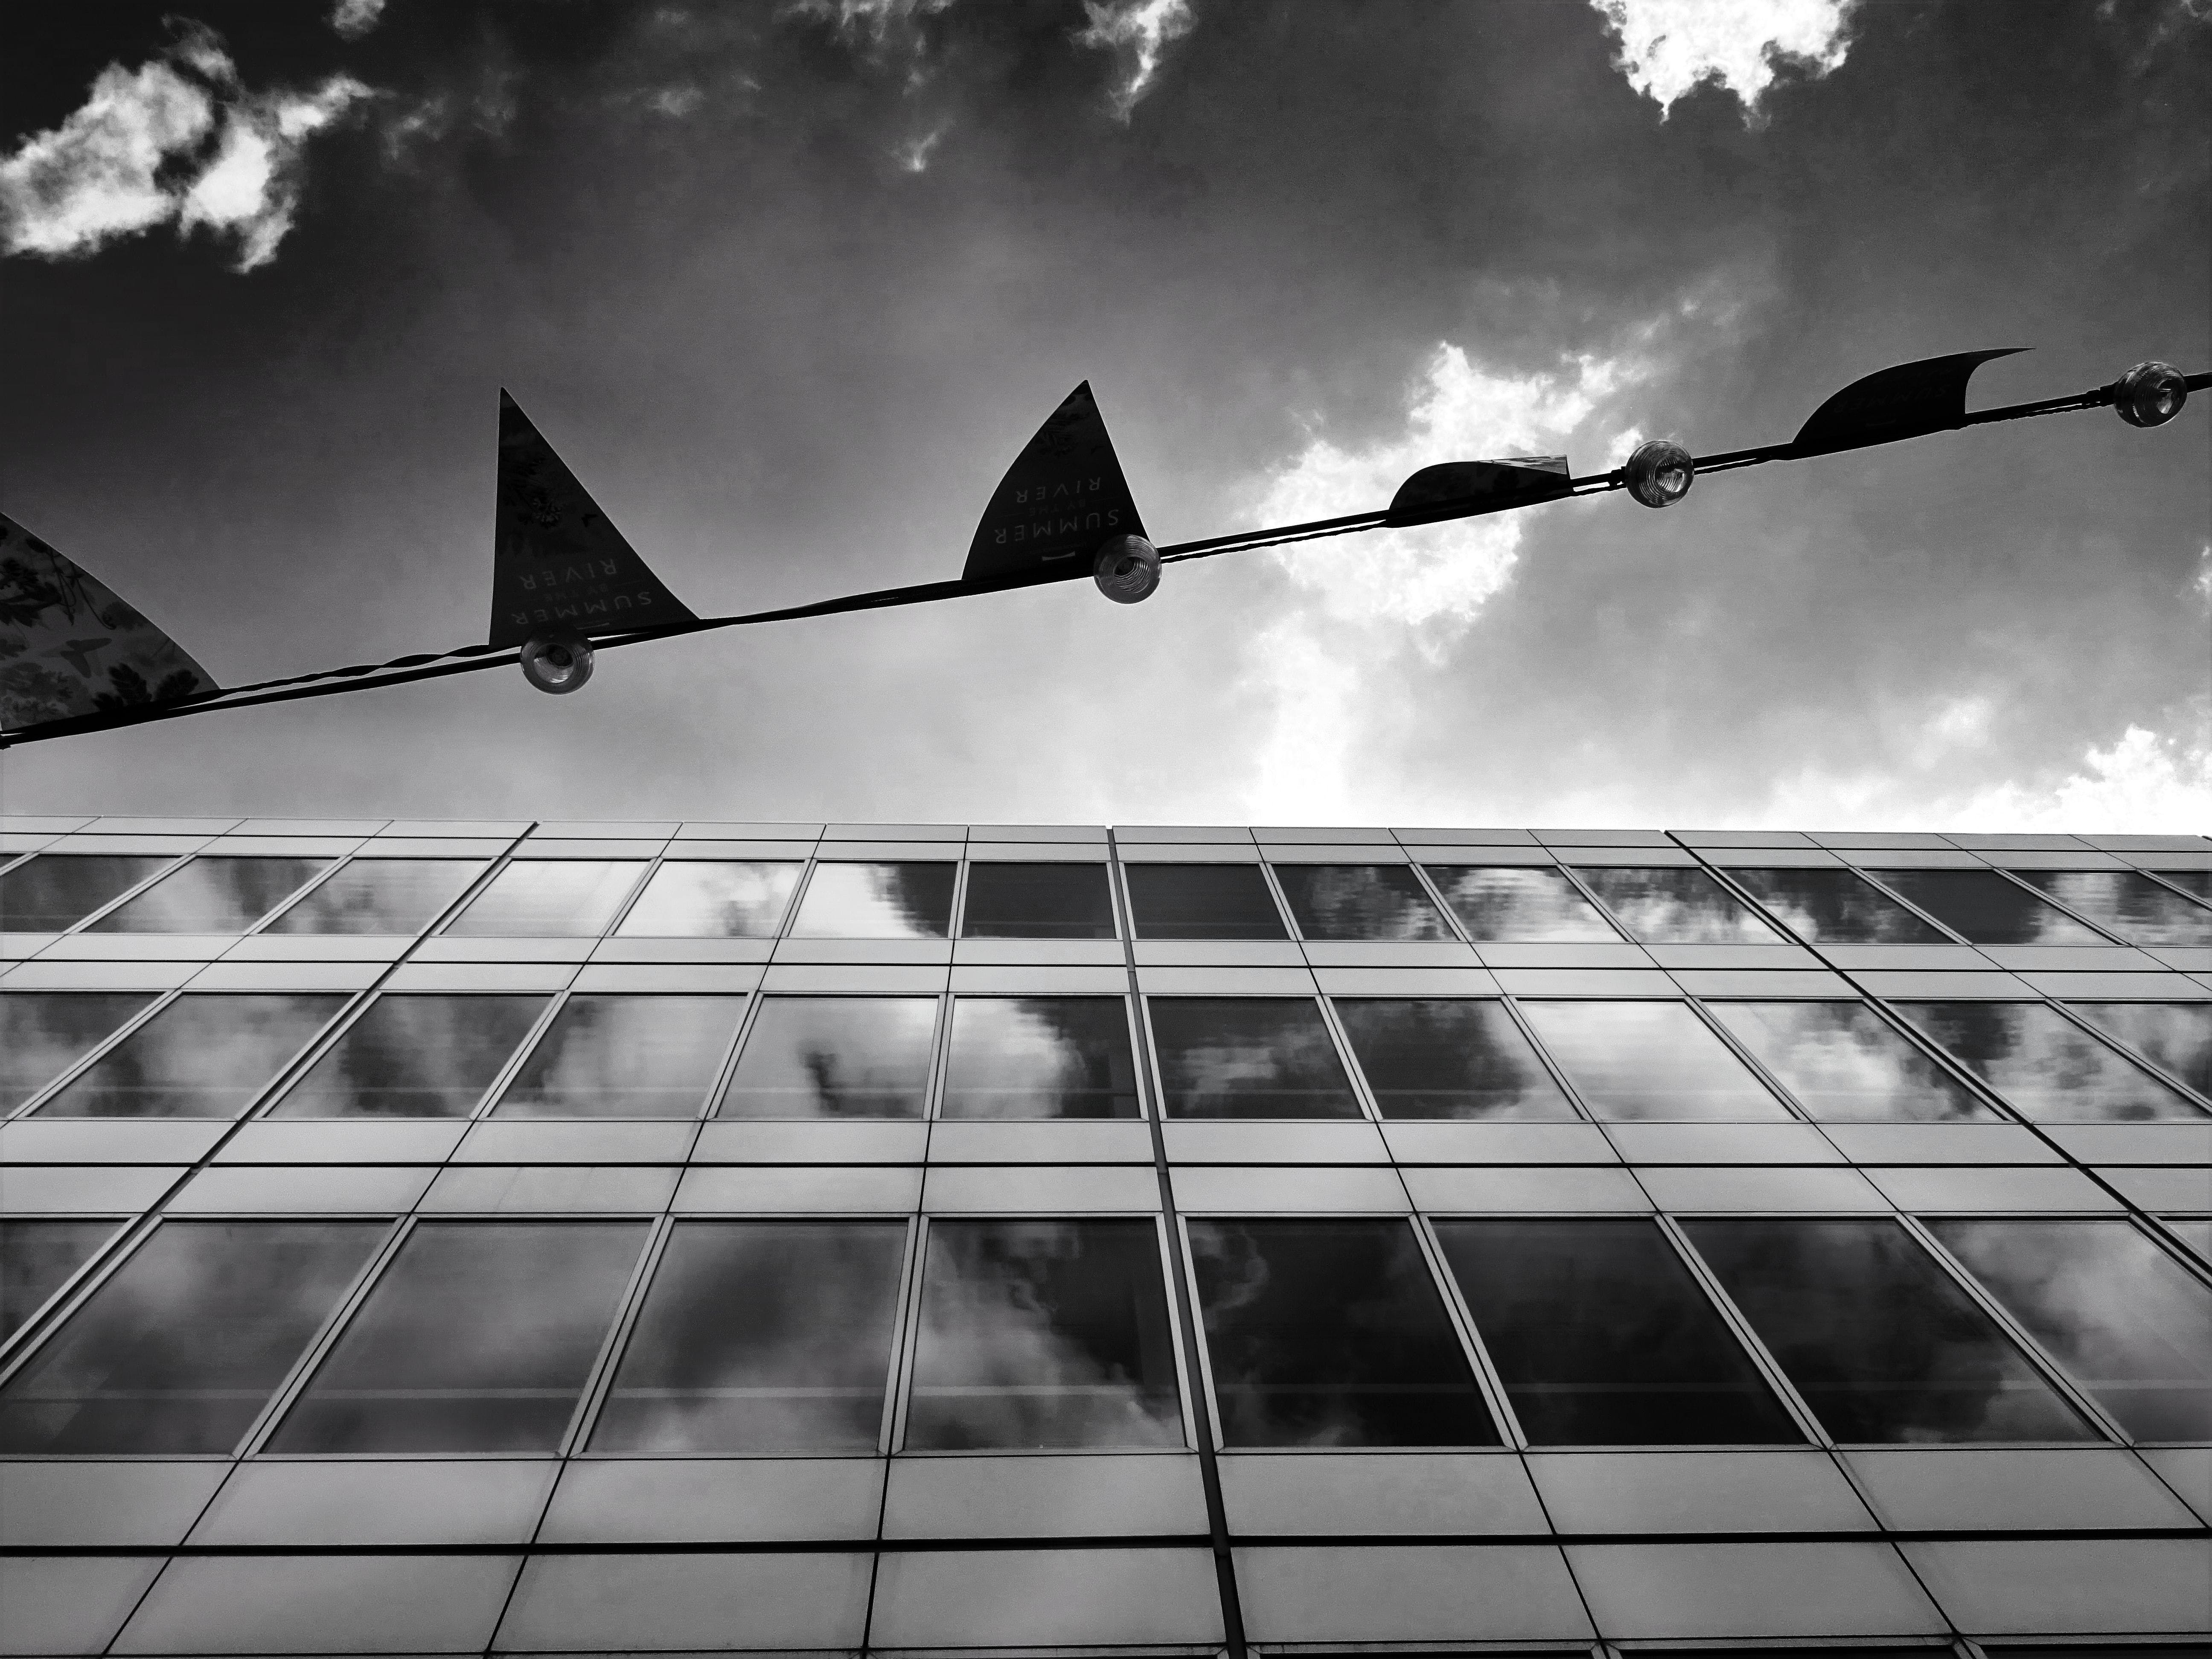 Grayscale Photography of a Building